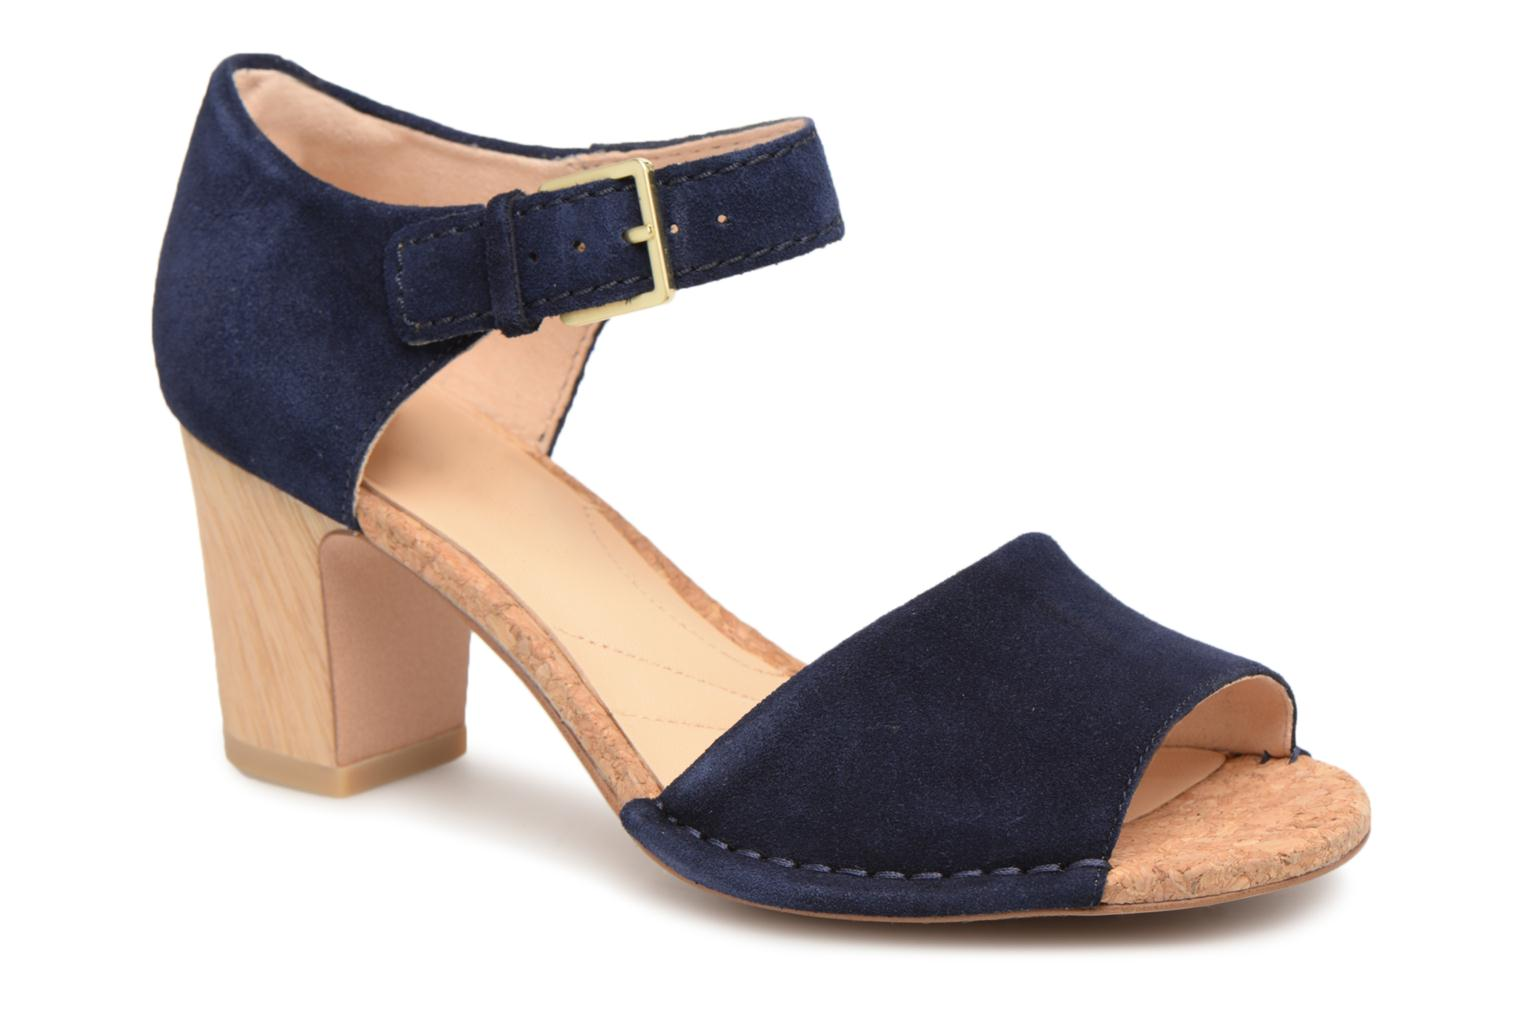 Marques Chaussure femme Clarks femme Spiced Olivia Navy Suede